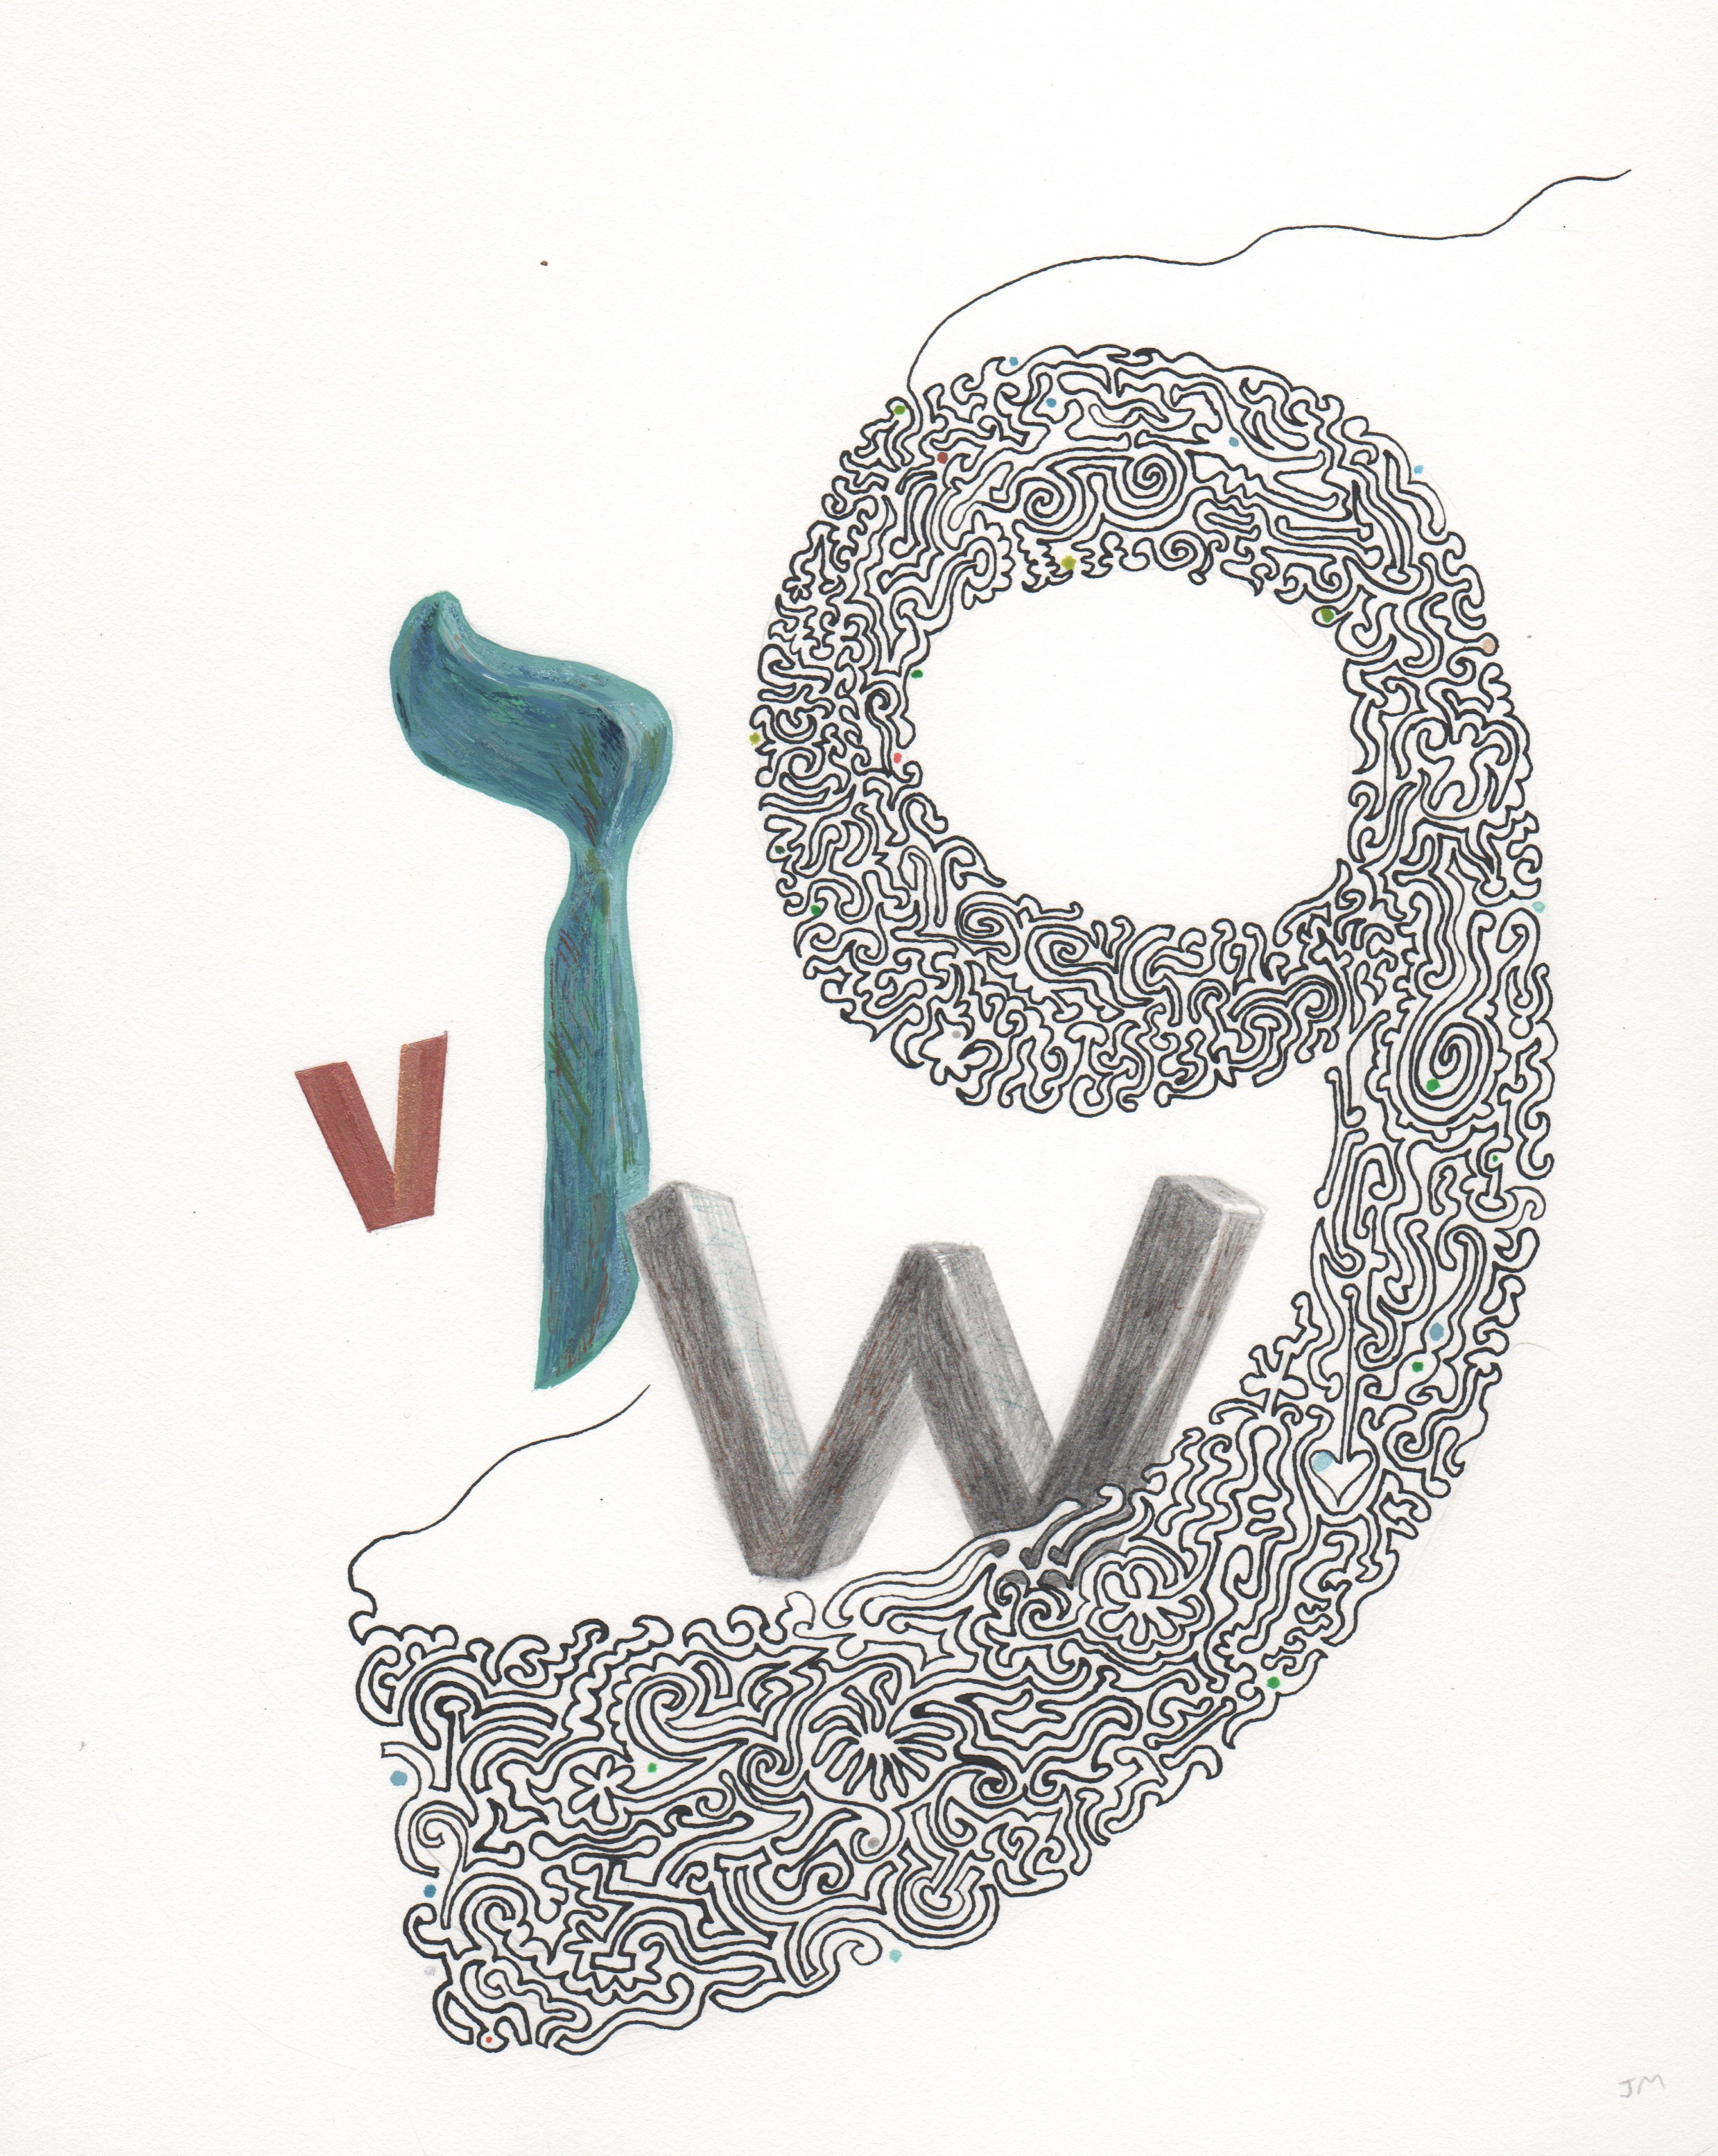 Joel Moskowitz,  Arabic  Waaw  and Hebrew  Vav , with V and W,  Mixed media on paper, 11x9